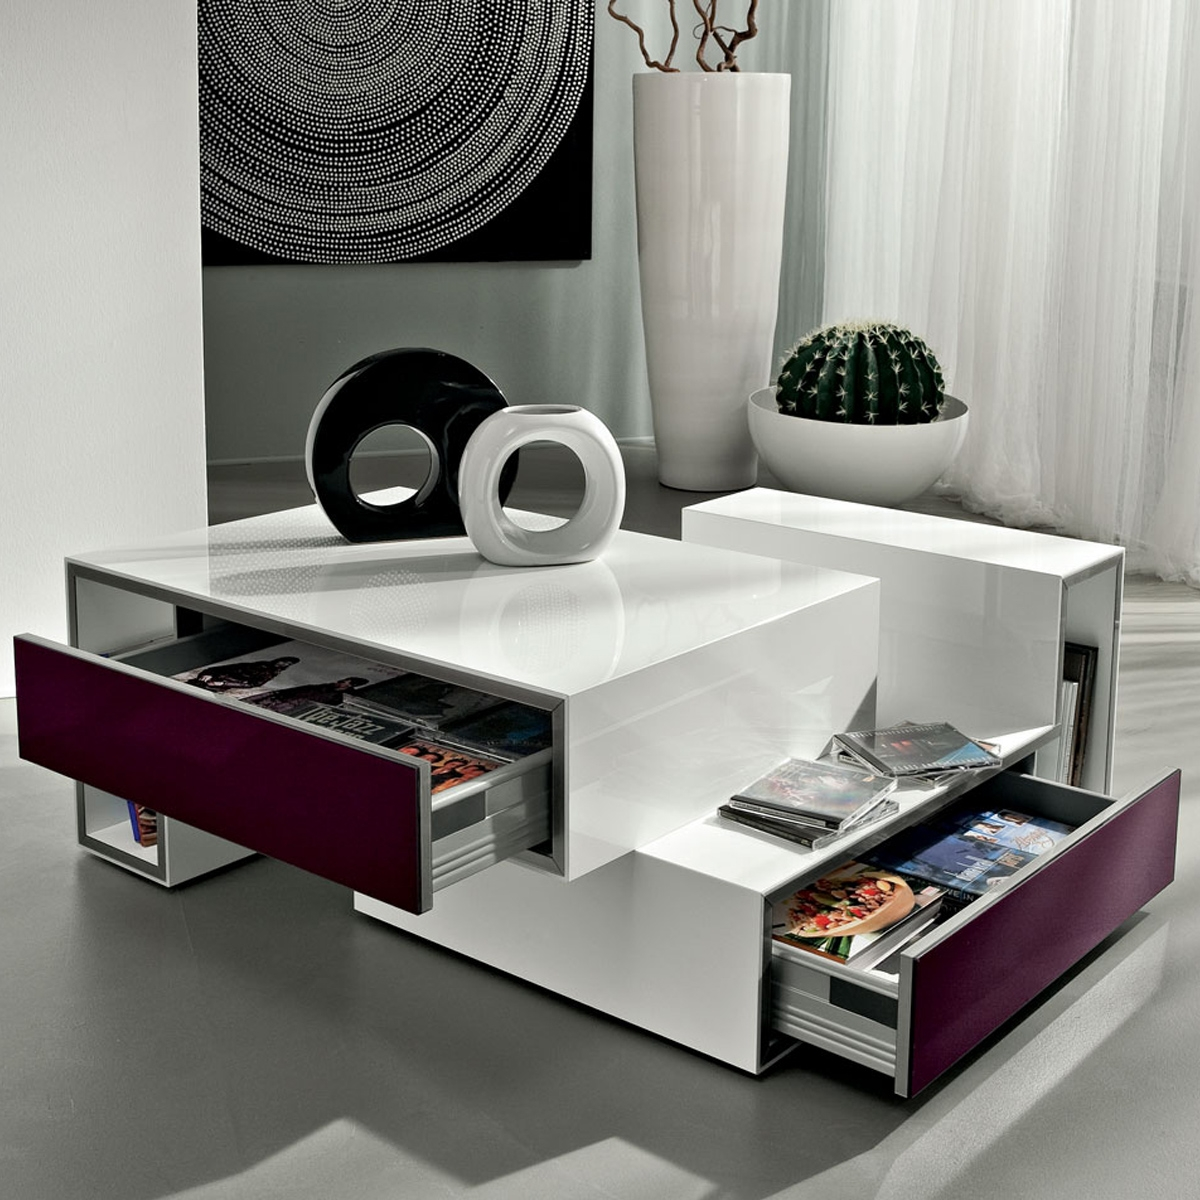 Table basse design avec tiroir marika - Table basse italienne design ...